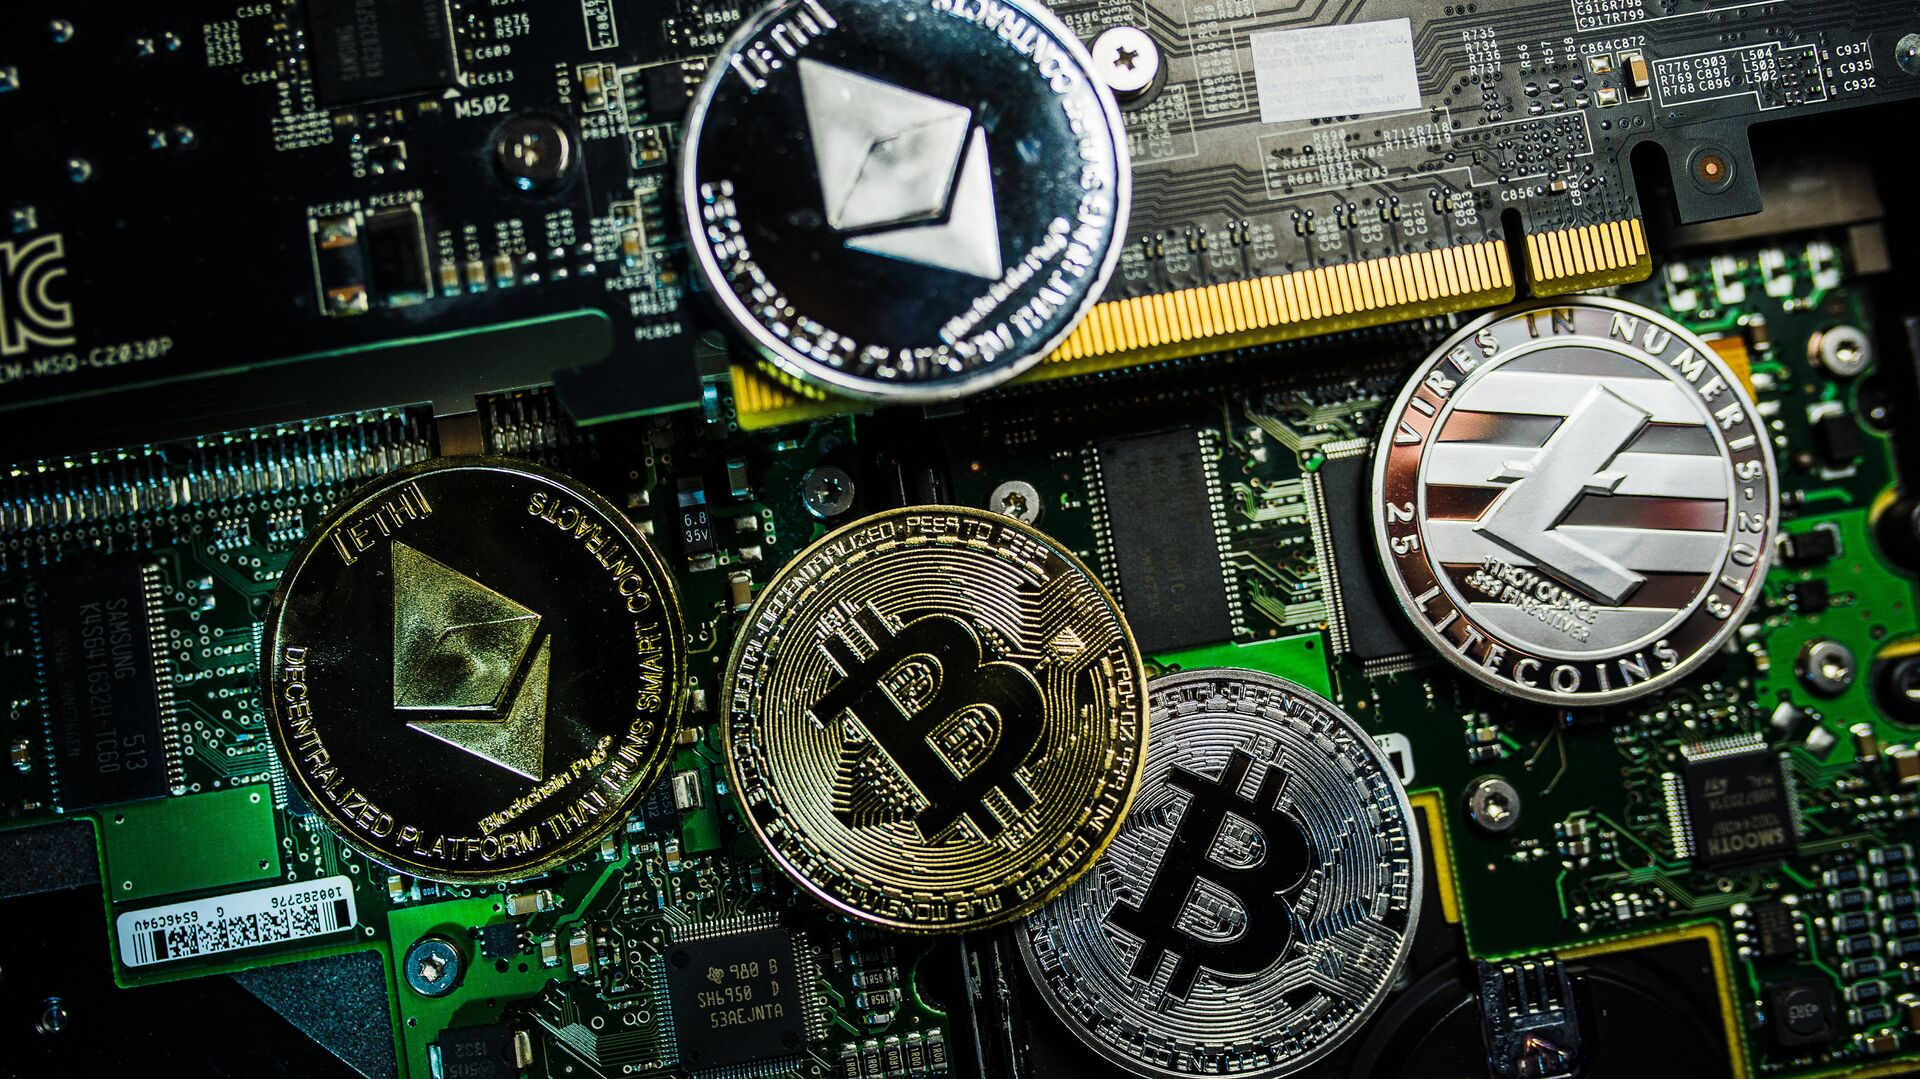 Souvenir coins with the cryptocurrency logos of Bitcoin, Litecoin and Ethereum - Sputnik Mundo, 1920, 23.02.2021